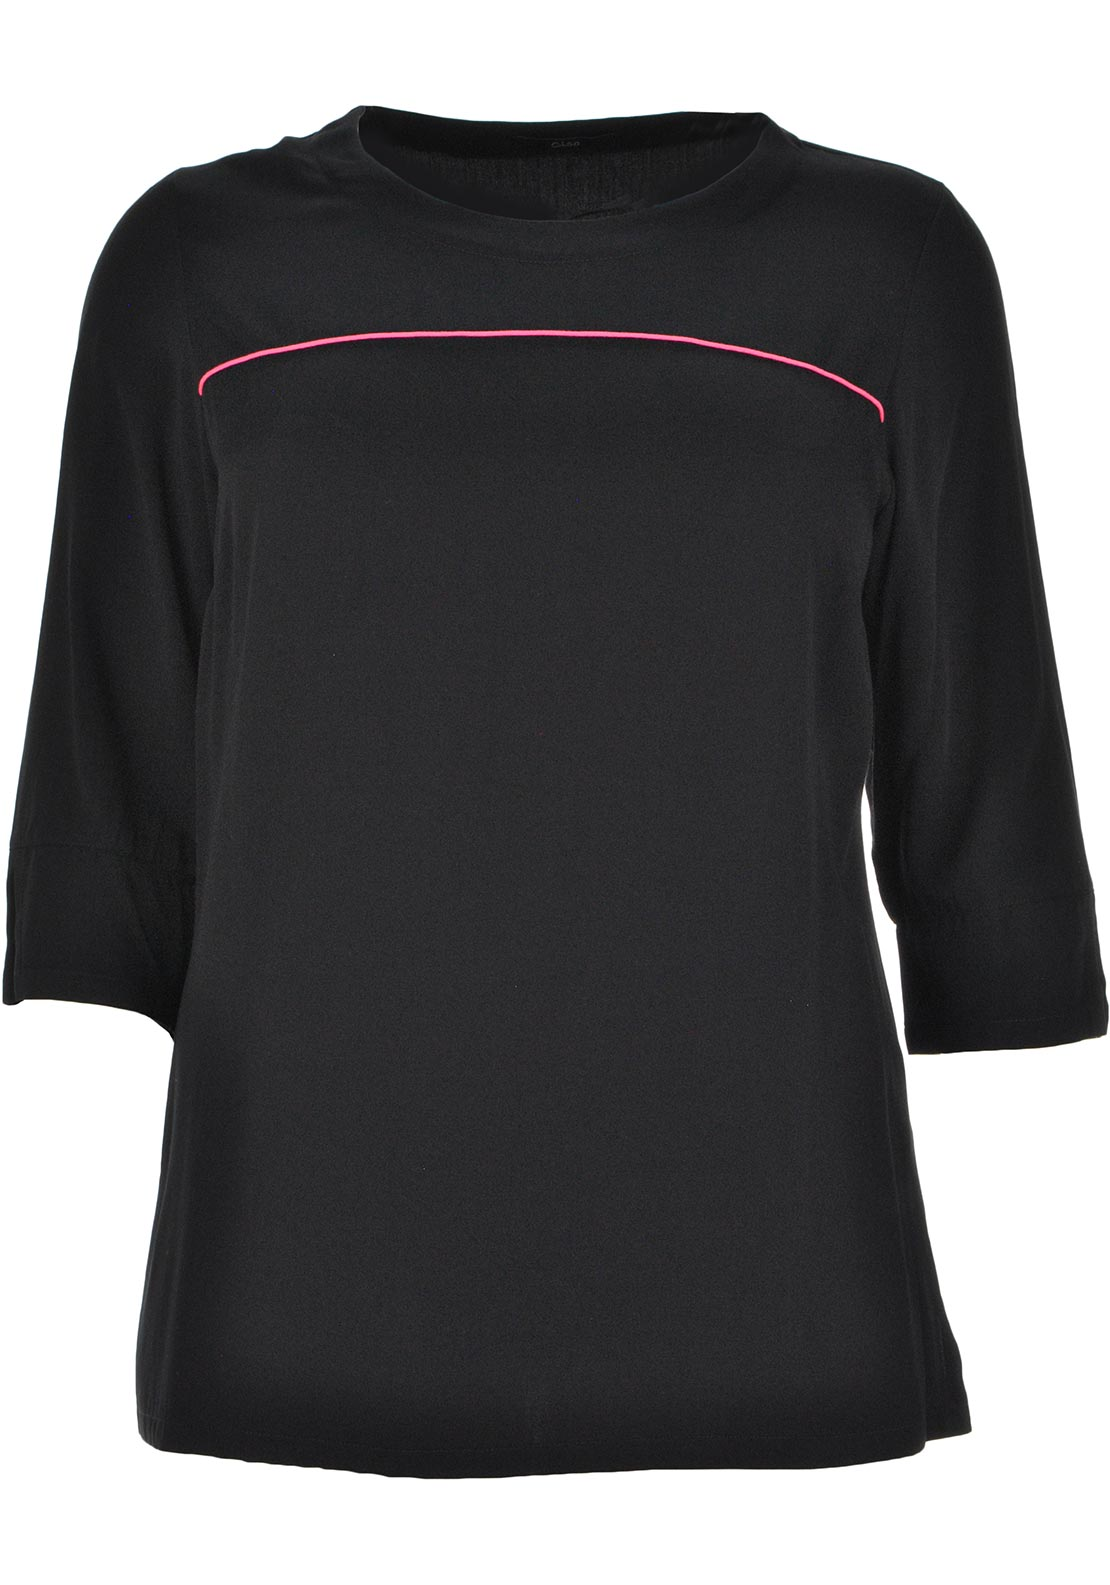 Ciso Relaxed Fit Tunic Top, Black